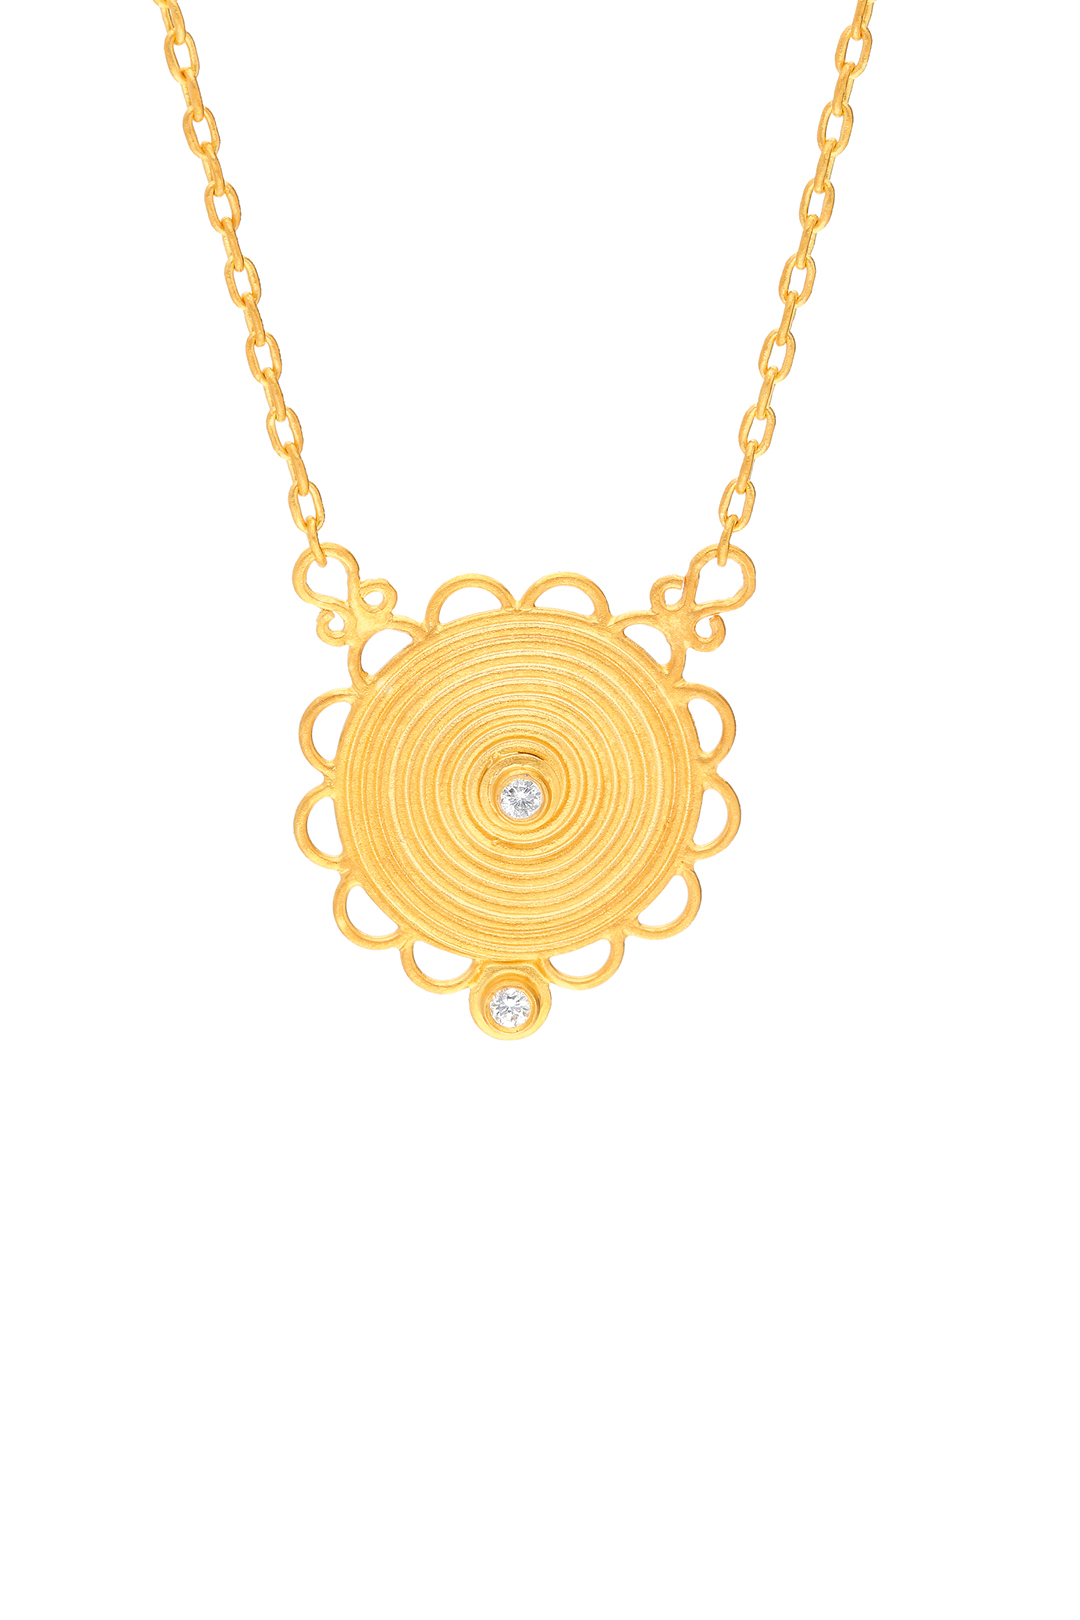 ANCIENT SPIRAL, SUN AND DIAMOND NECKLACE